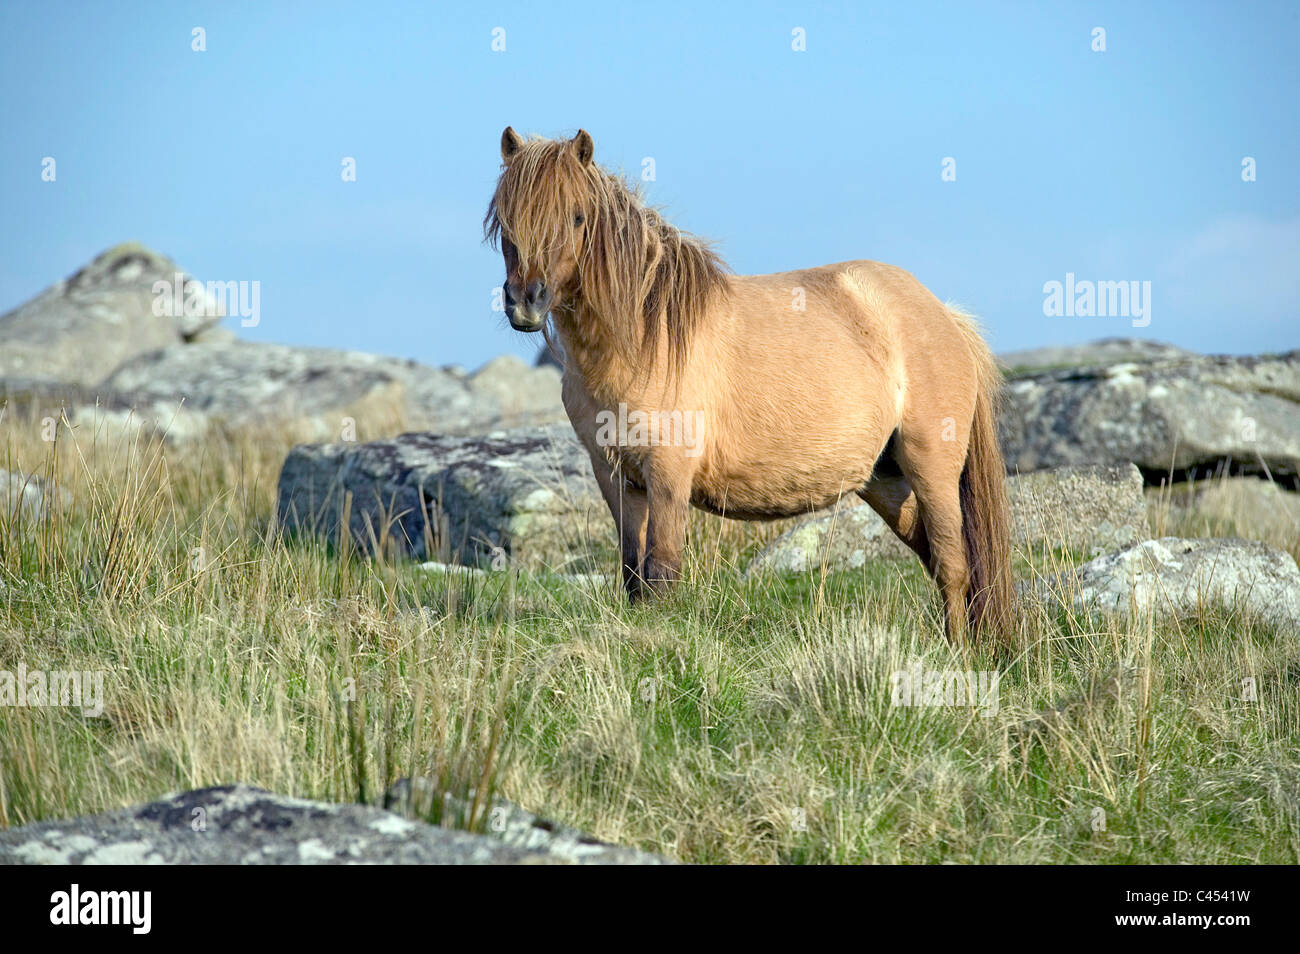 Great Britain, England, Cornwall, Bodmin Moor, pony on Rough Tor hill Stock Photo